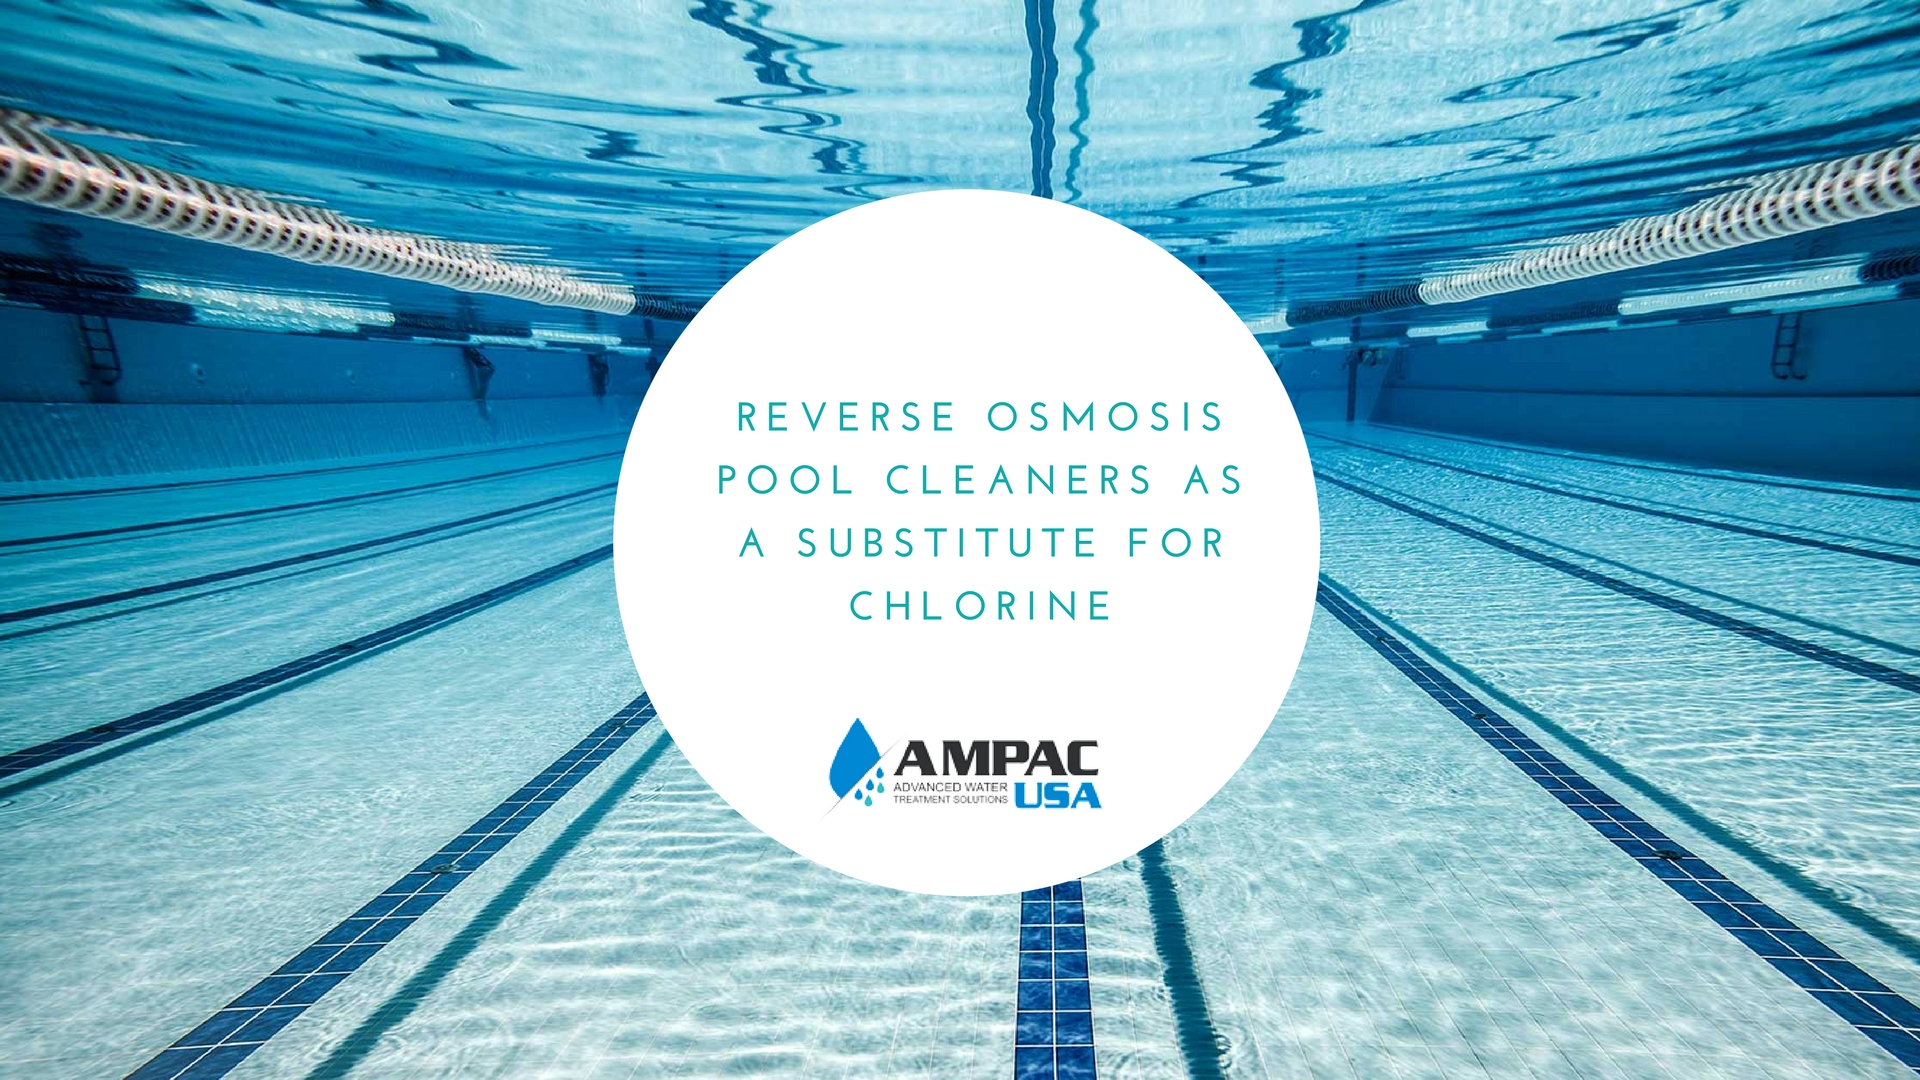 Reverse Osmosis Pool cleaners as a substitute for chlorine